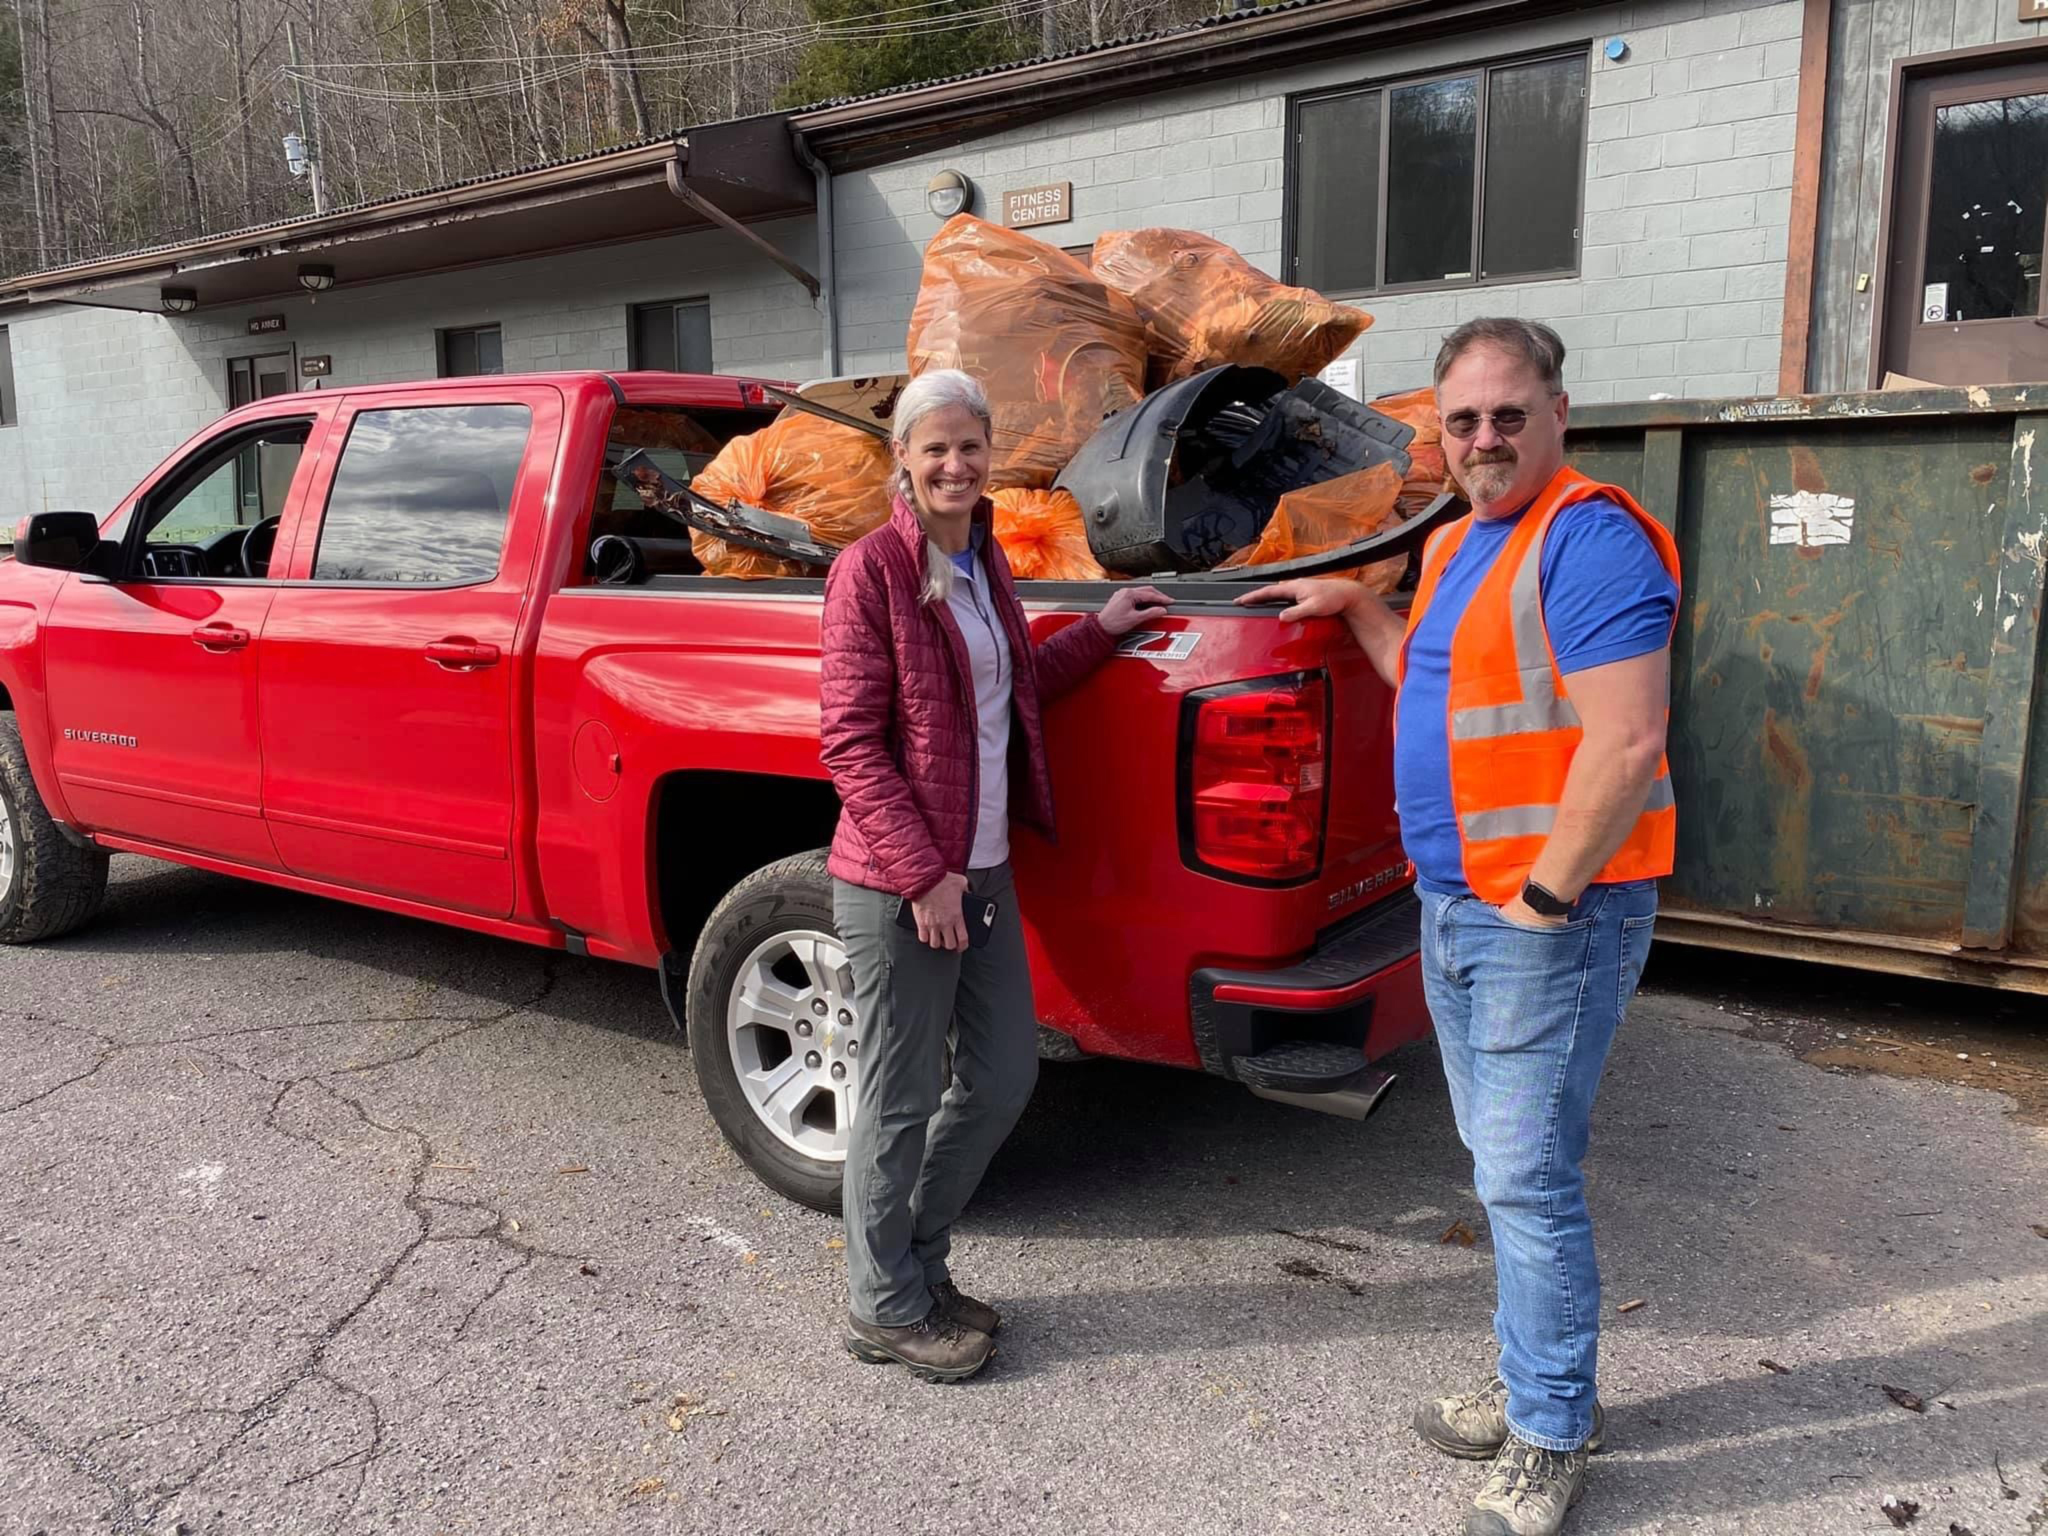 Jerry and Darlene Willis are saving Great Smoky Mountains National Park, one piece of litter at a time. Jerry is founder and president of Save Our Smokies (S.O.S.), one of many groups that work together as Litter Patrol volunteers. Image courtesy of Jerry and Darlene Willis.